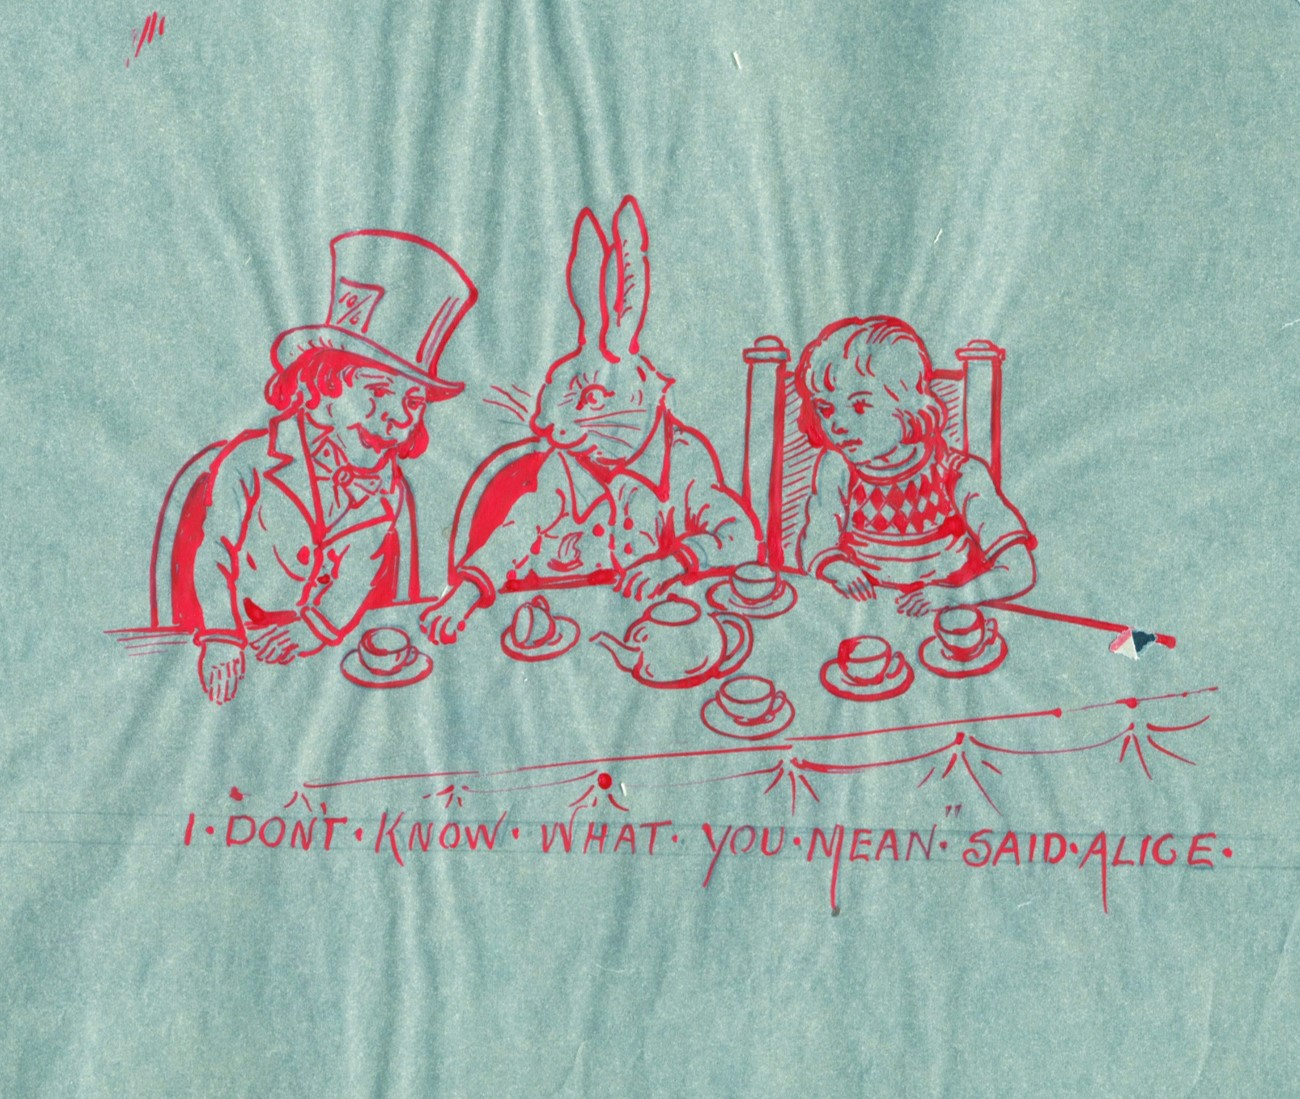 Drawing of the White Rabbit from Alice in Wonderland